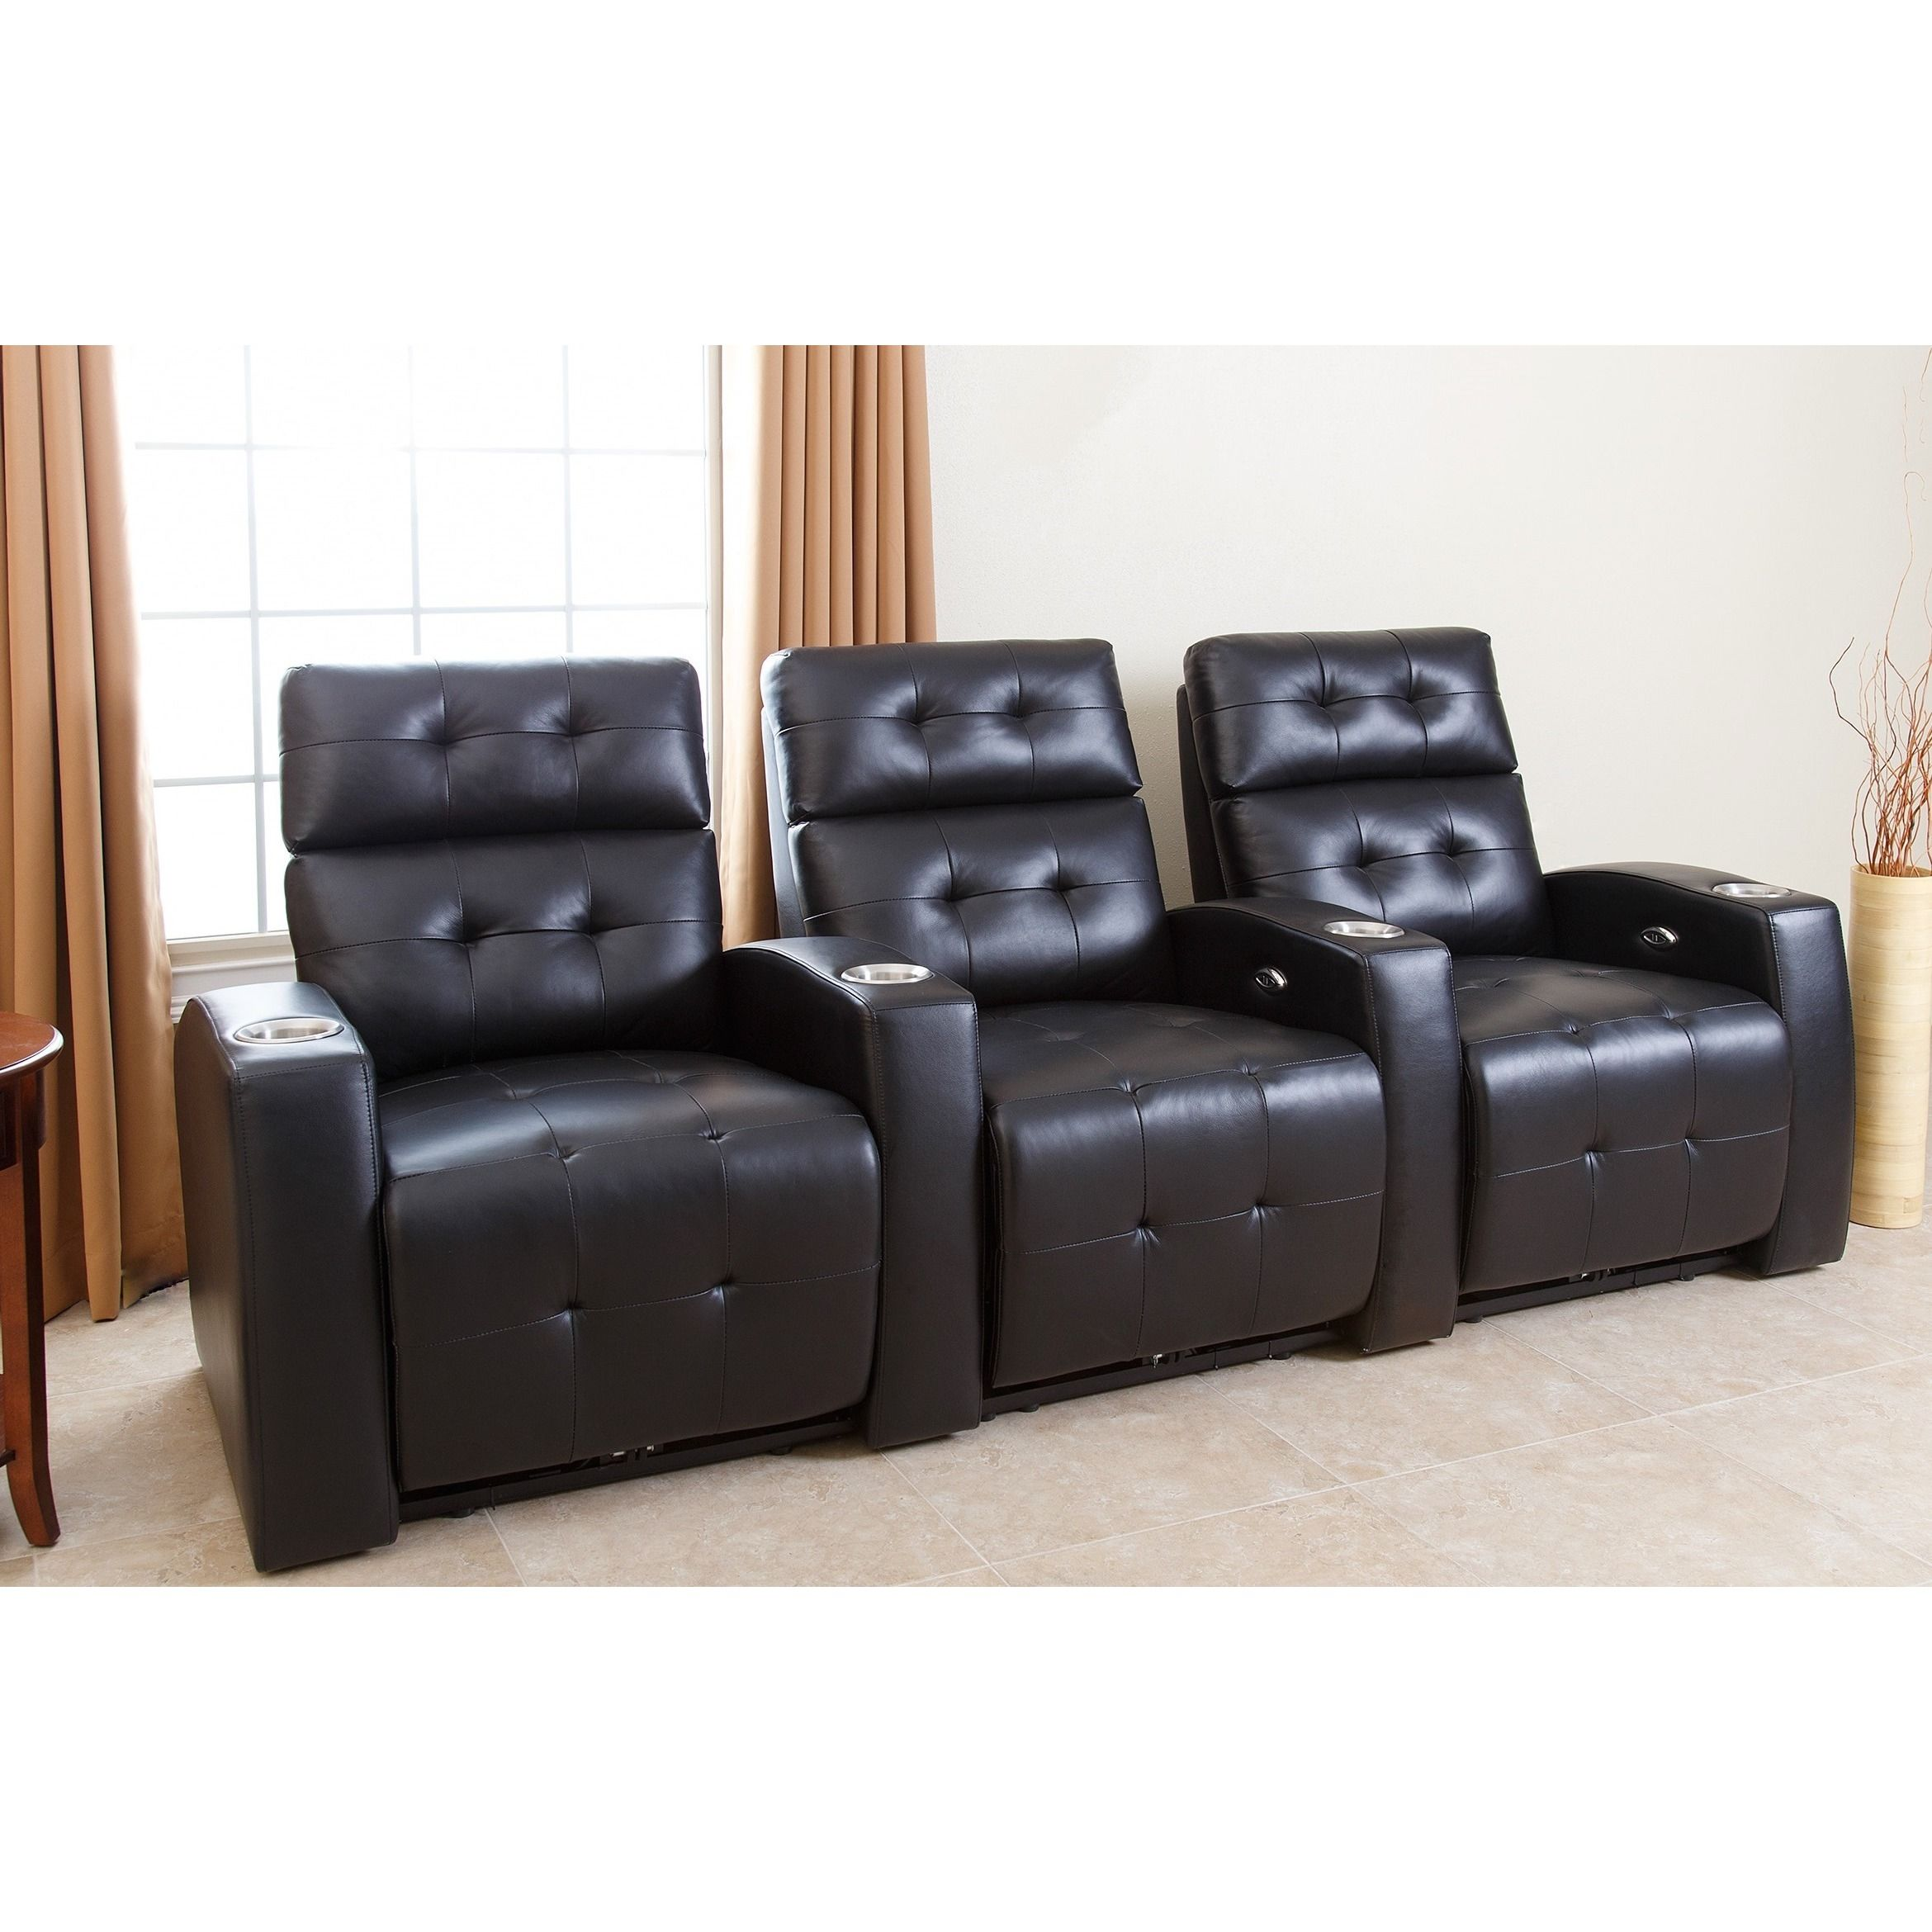 Andria Top Grain Leather Media Recliners Living Room Set Black Recliner By Abbyson